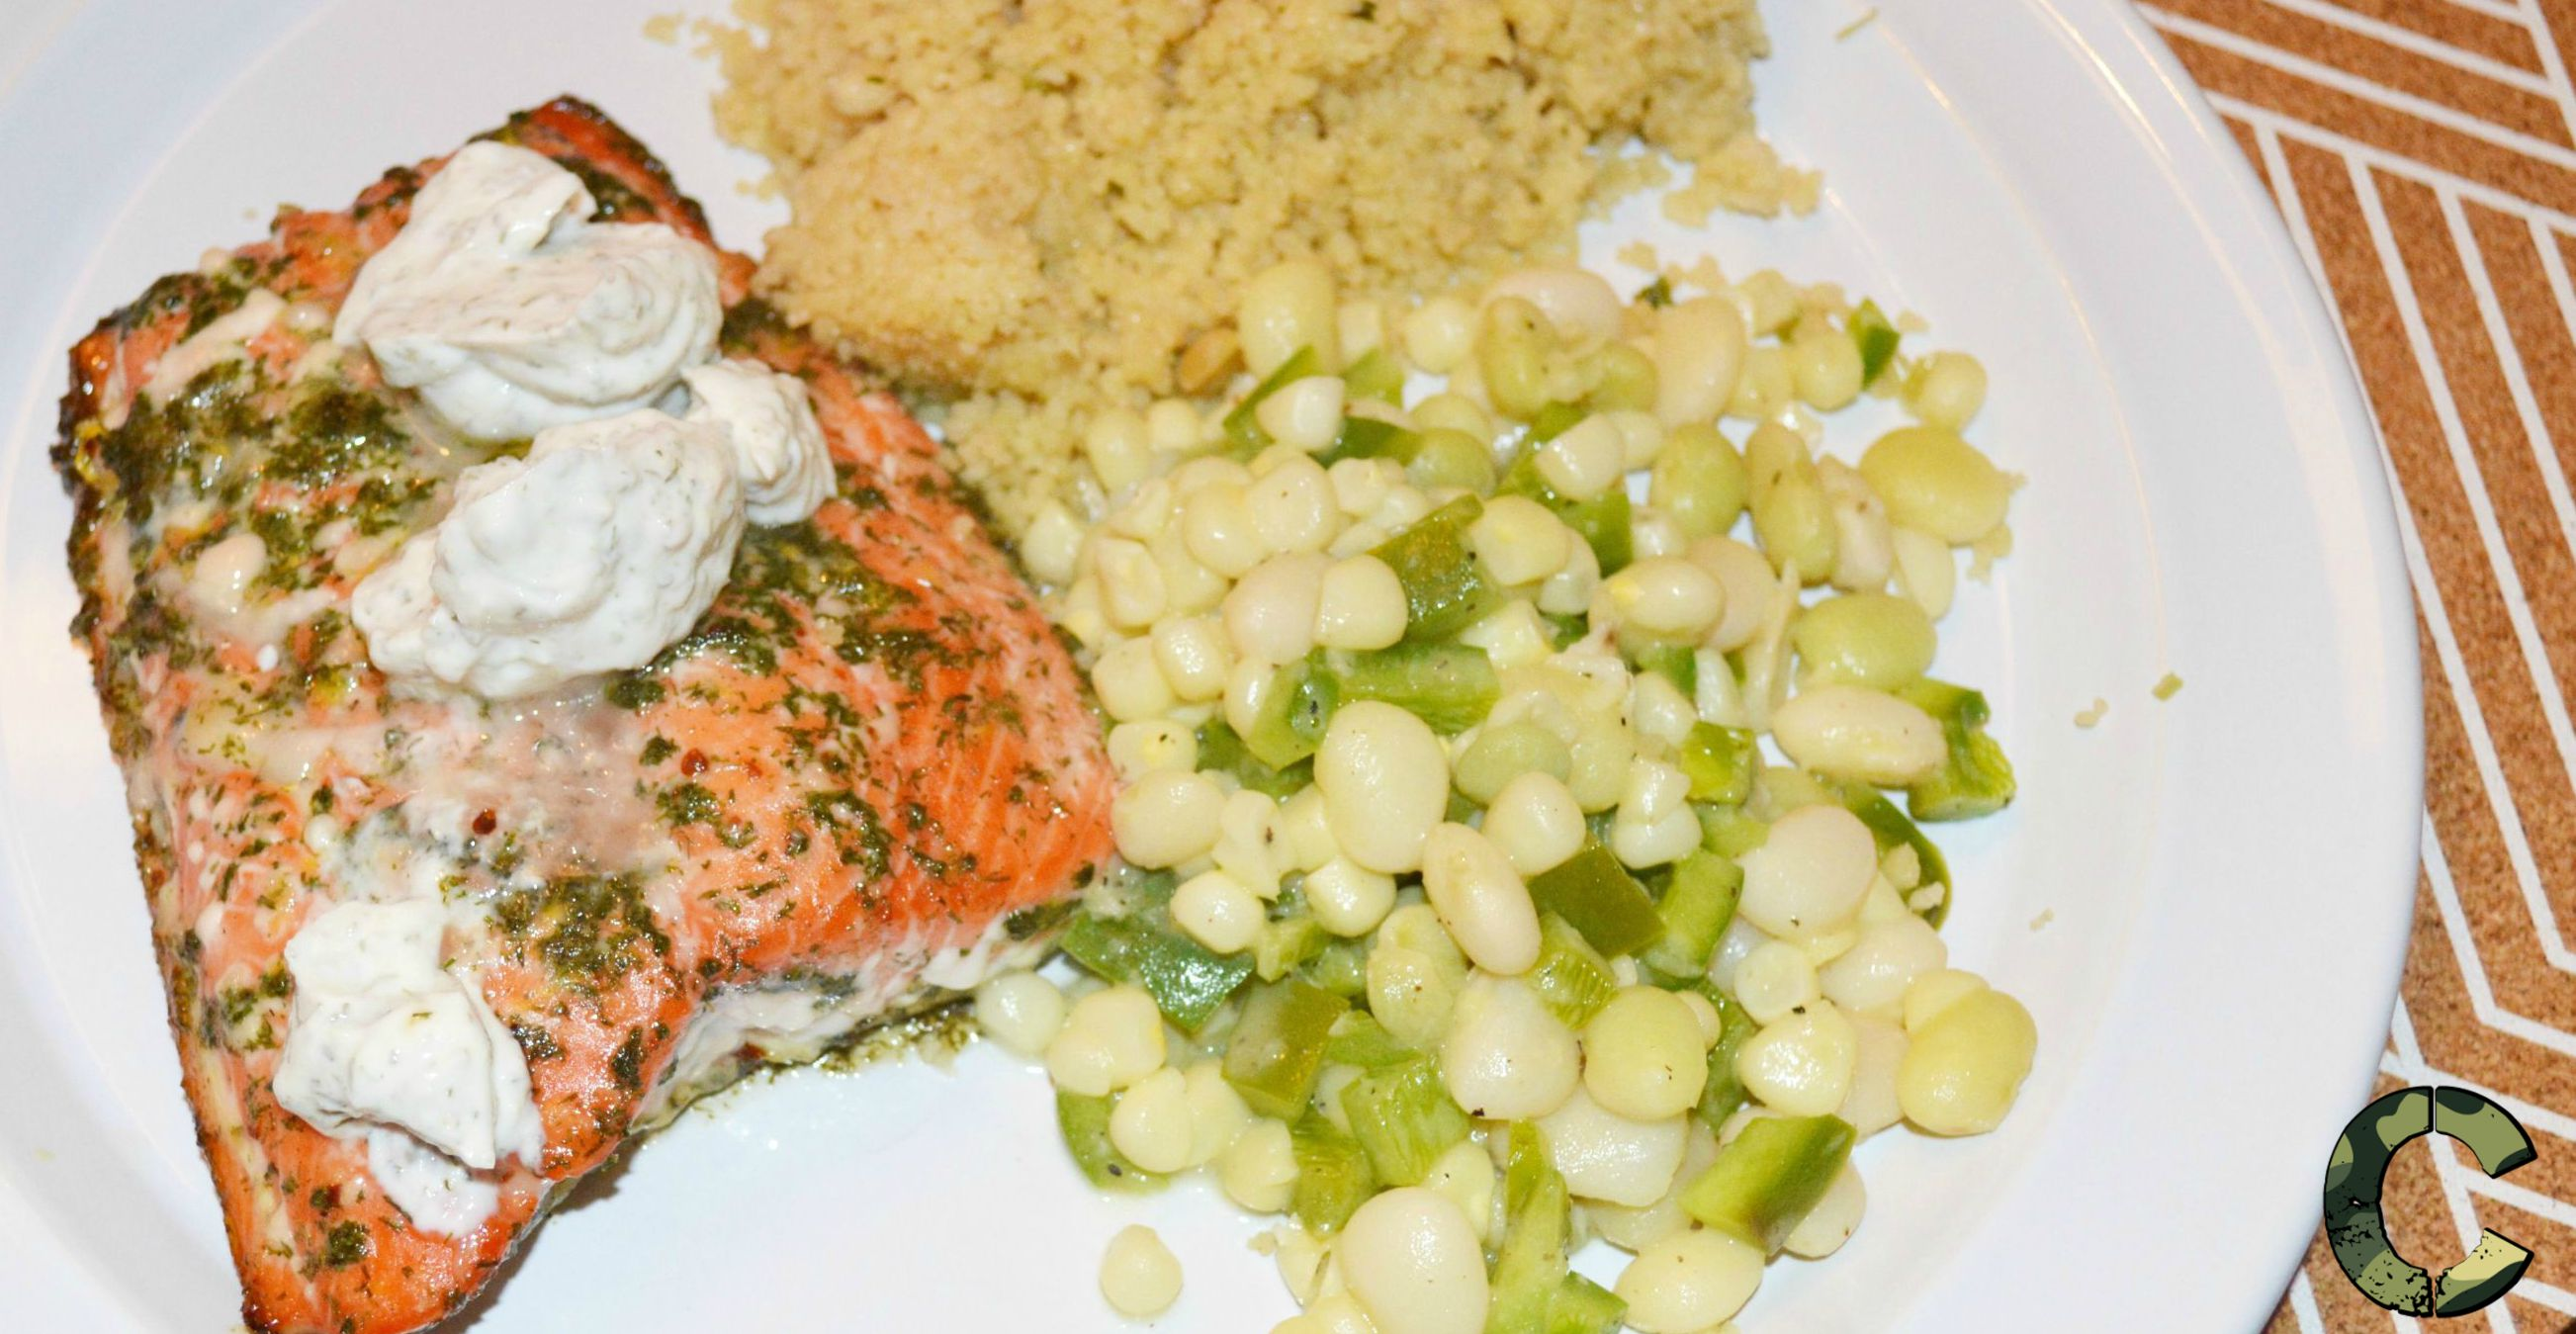 Lemon and dill salmon 2